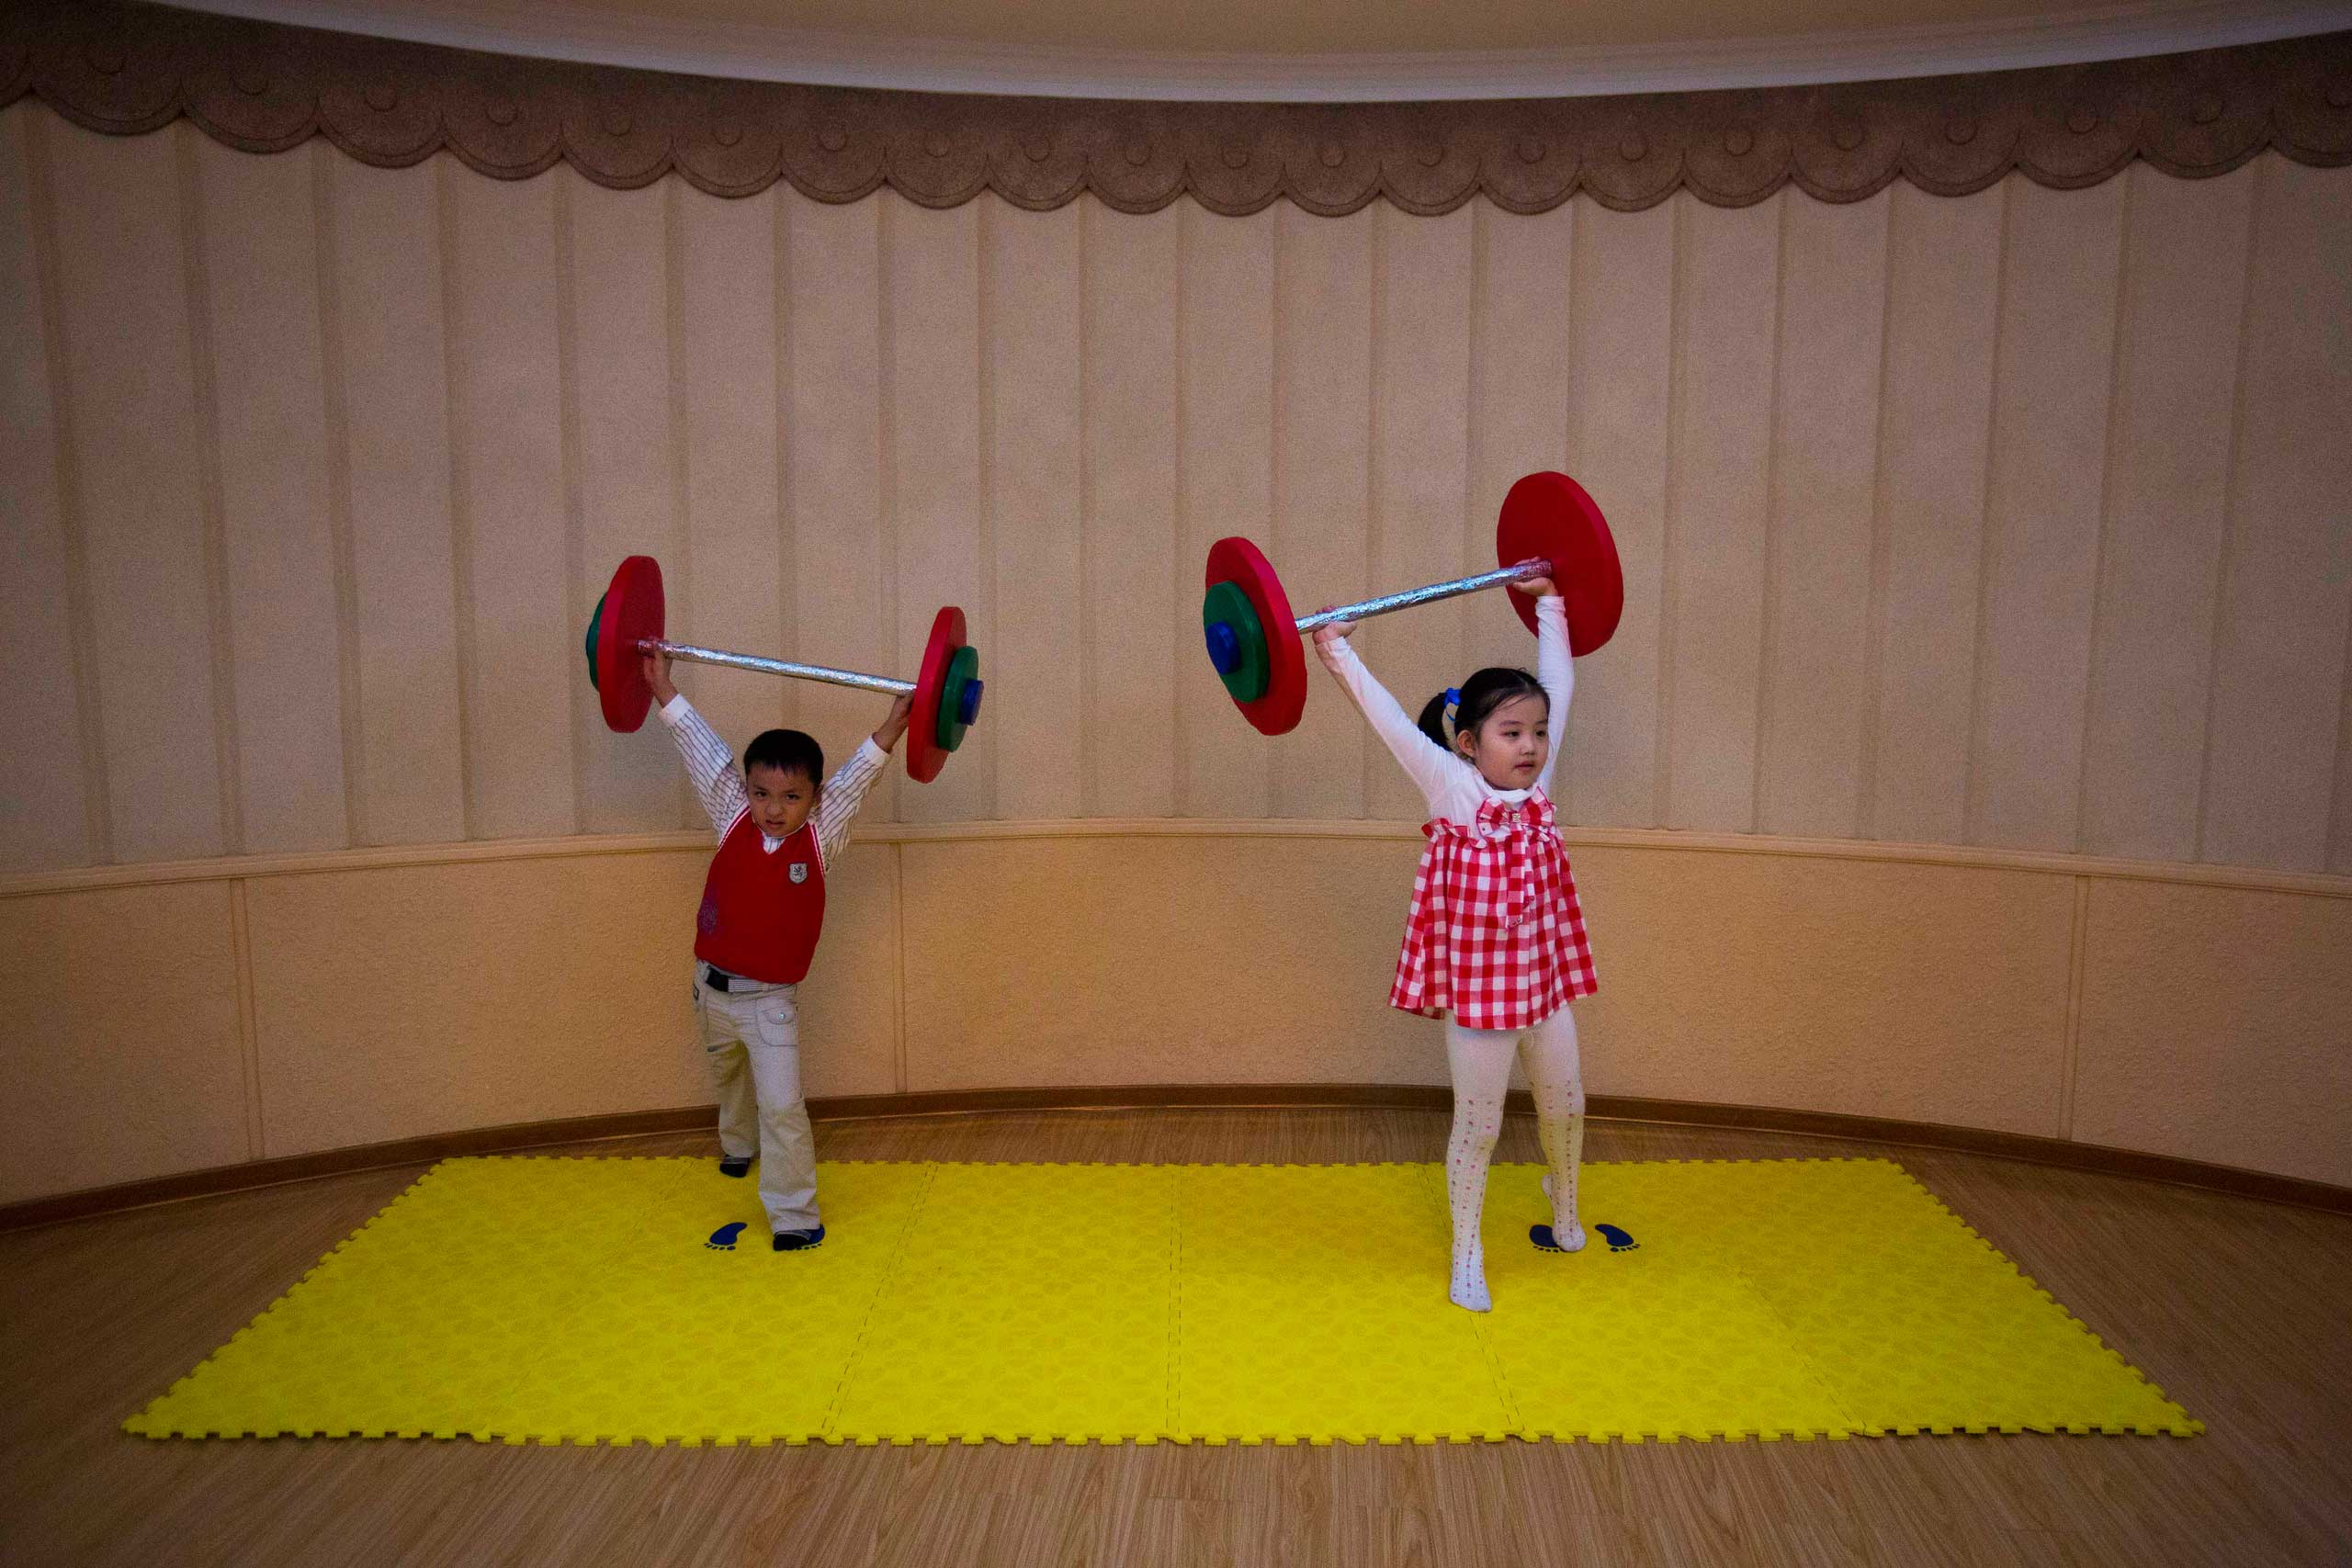 Sept. 13, 2012. North Korean children lift toy barbells during play time at a school for the performing arts in Pyongyang, North Korea.